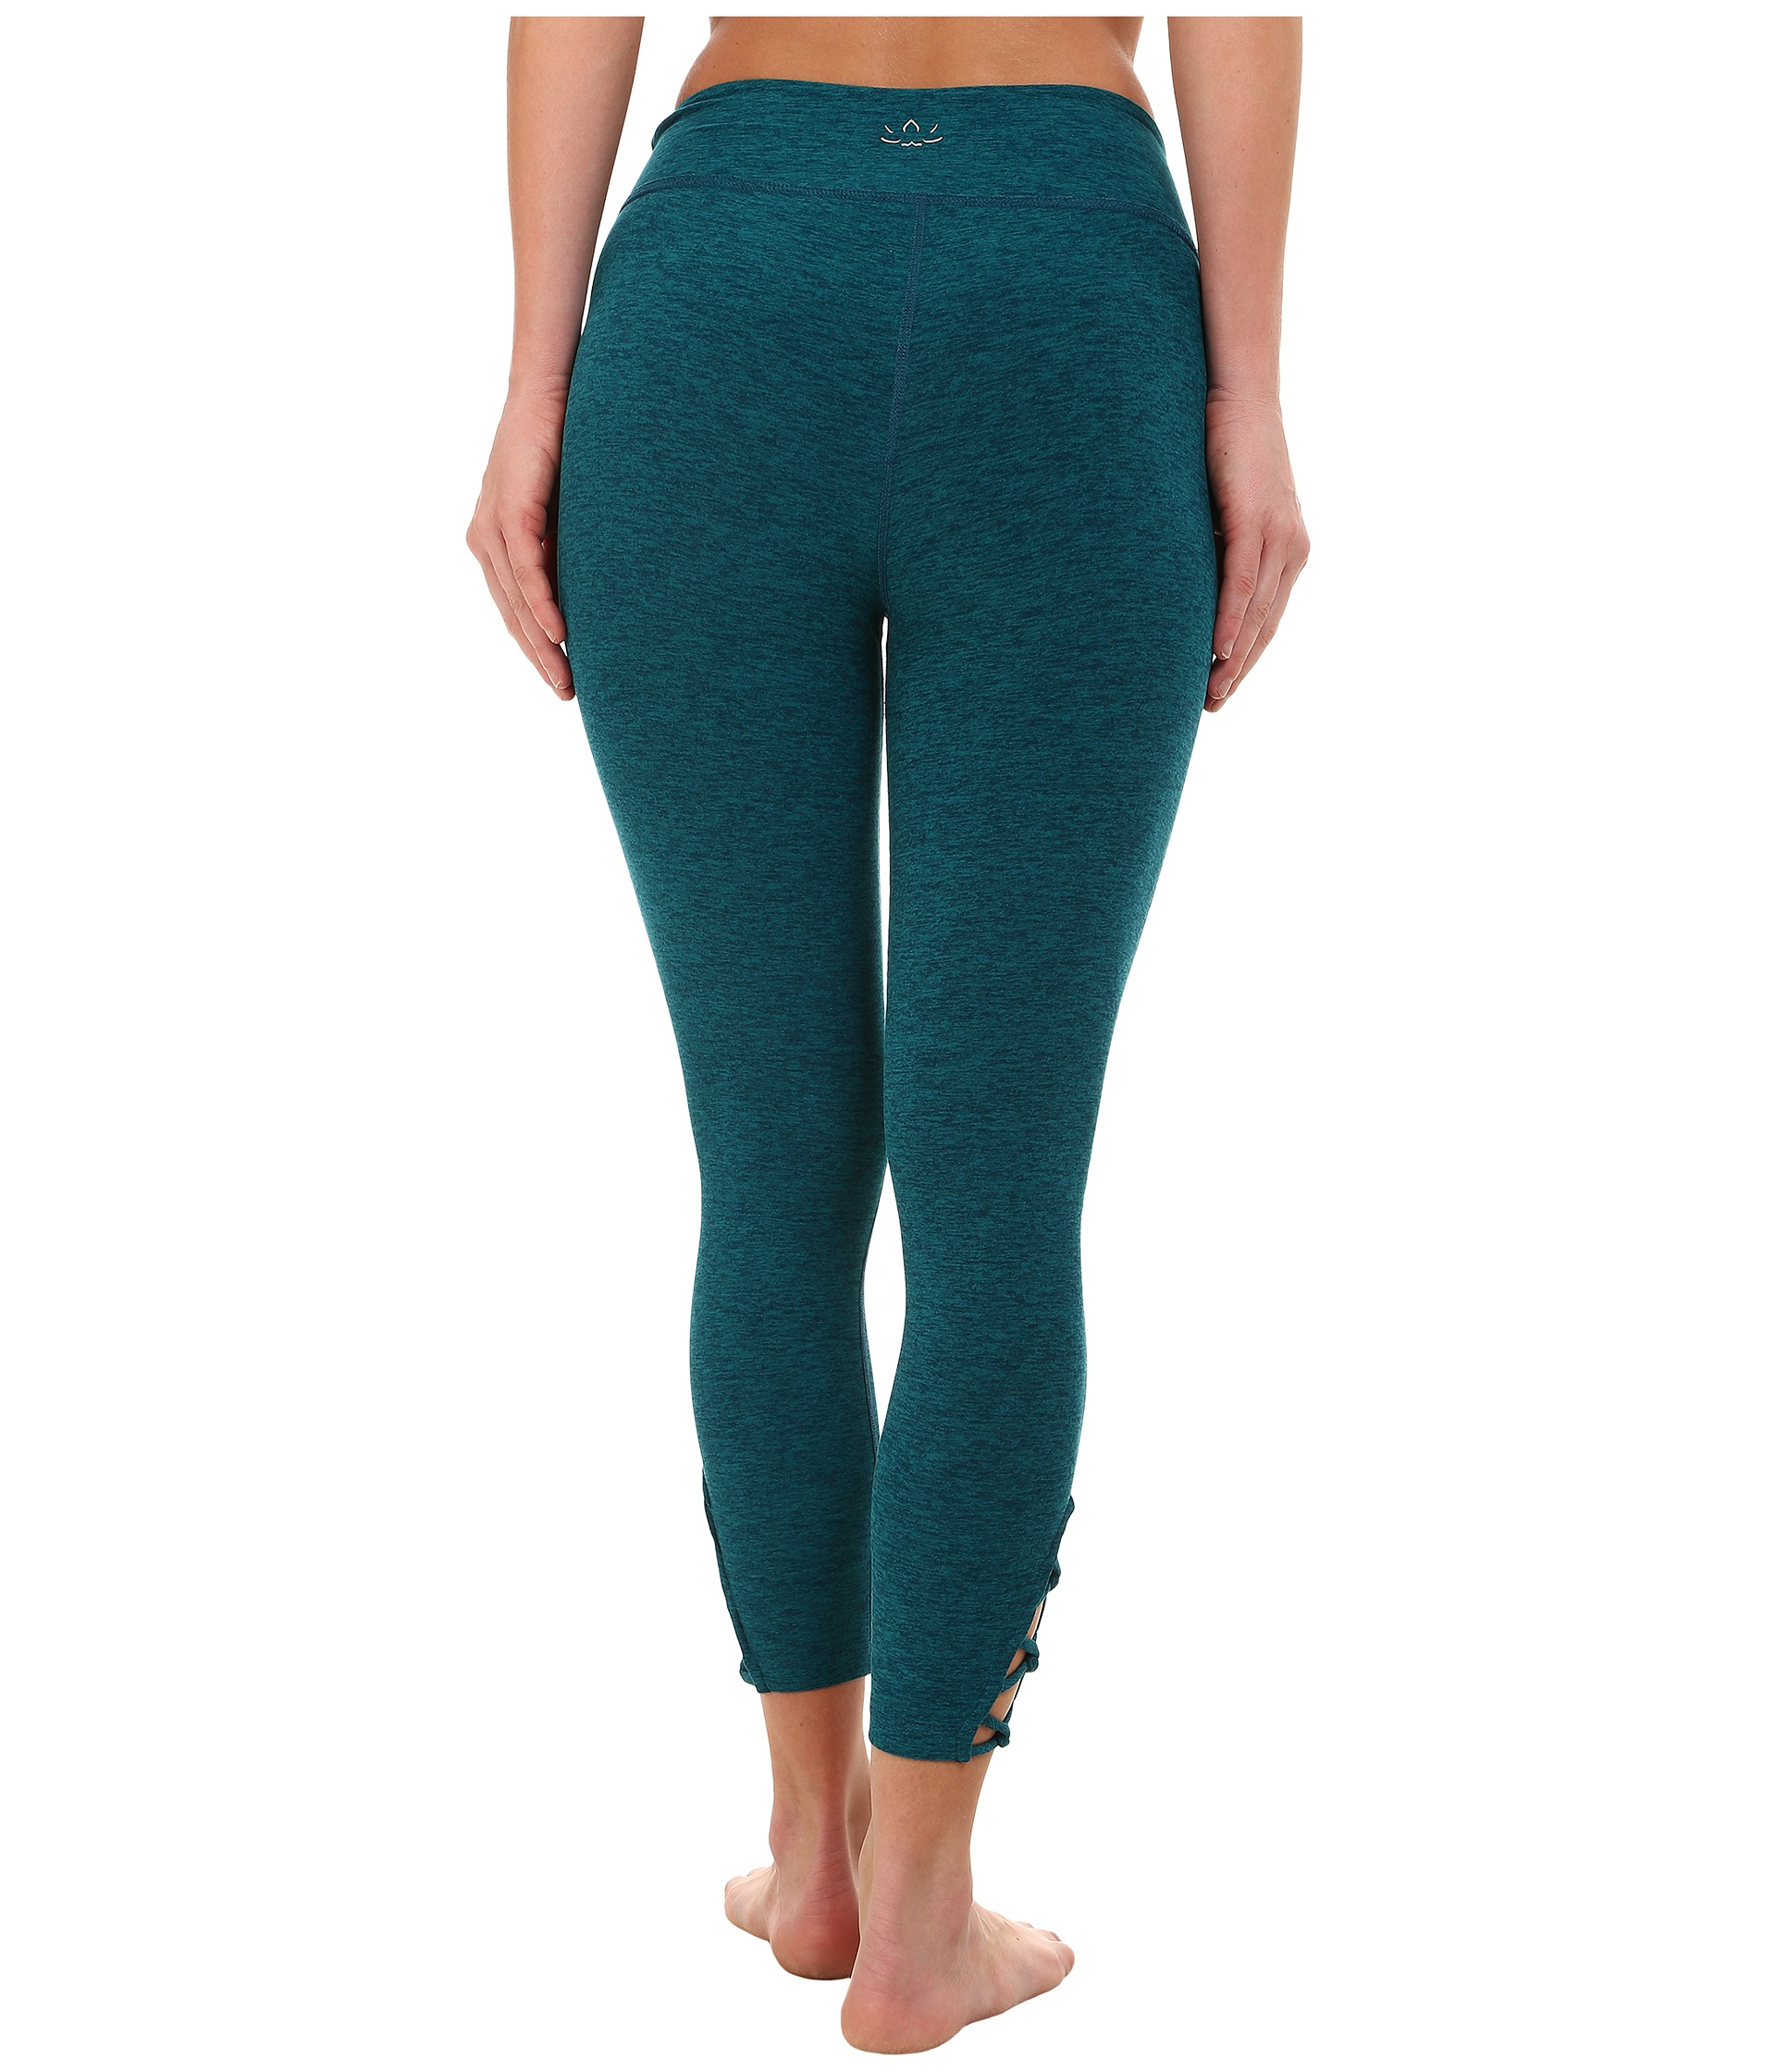 Beyond Yoga Interloop Leggings Mosaic Blue/Teal - Zappos.com Free Shipping BOTH Ways